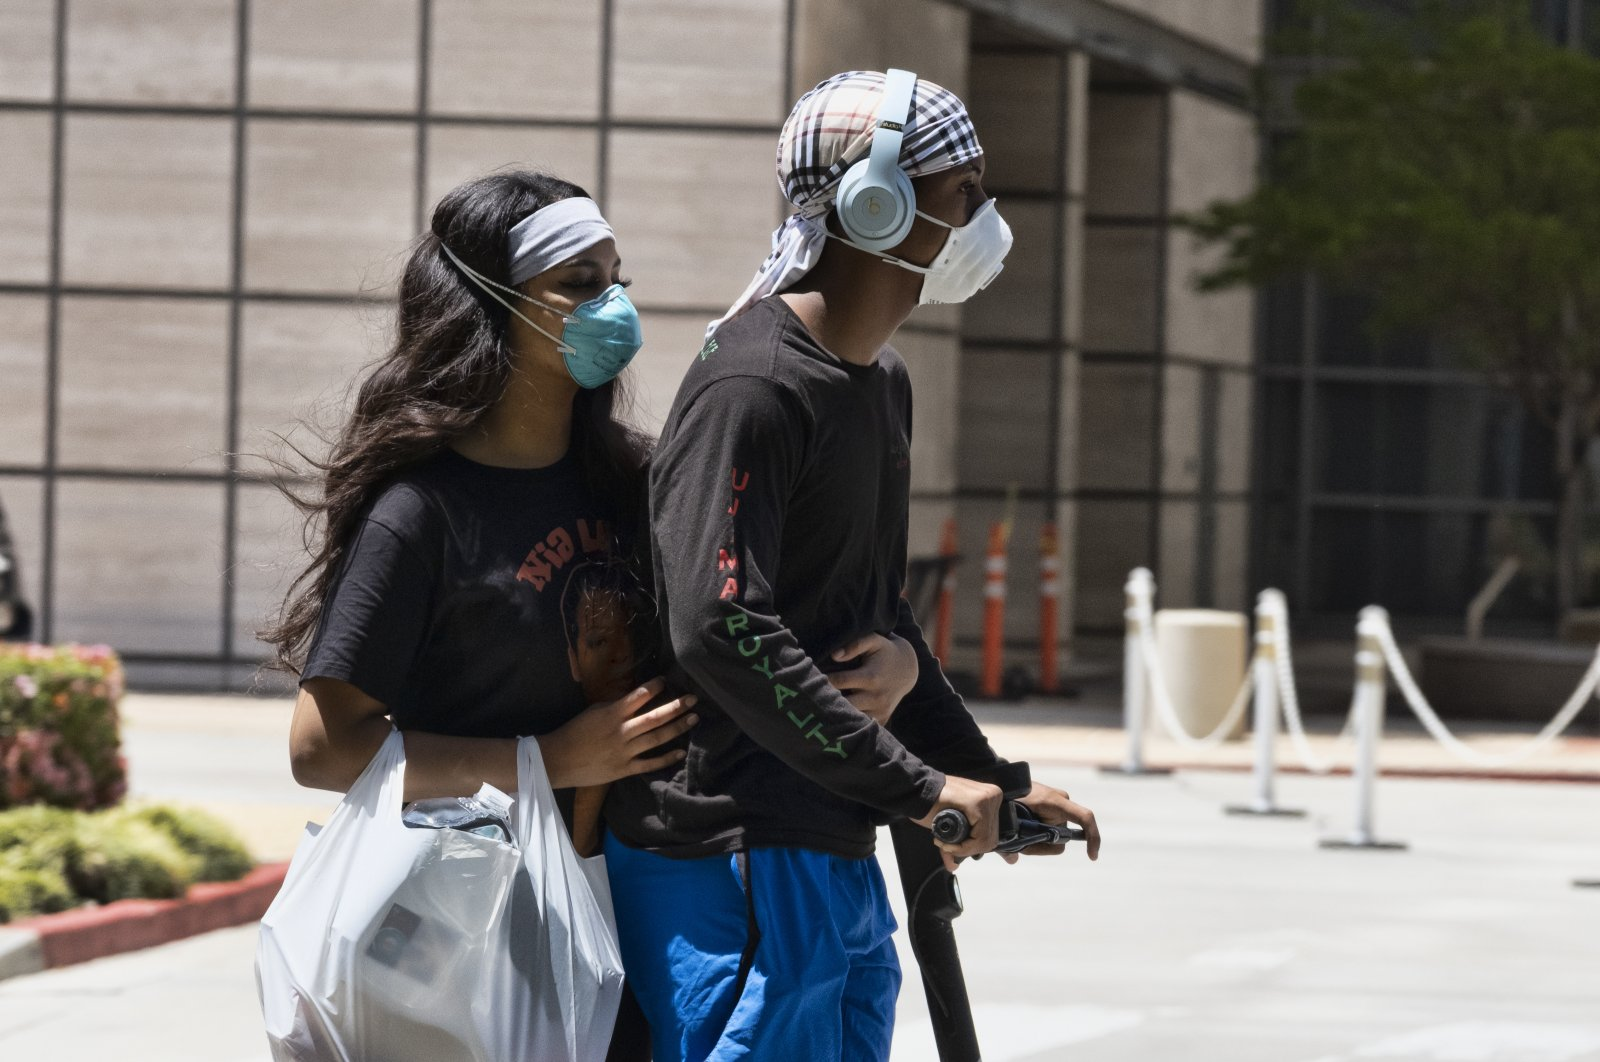 A couple wearing protective masks from the coronavirus ride a scooter down the street past the Ronald Reagan UCLA Medical Center in the Westwood section of Los Angeles, California, U.S. on May 15, 2020. (AP Photo)